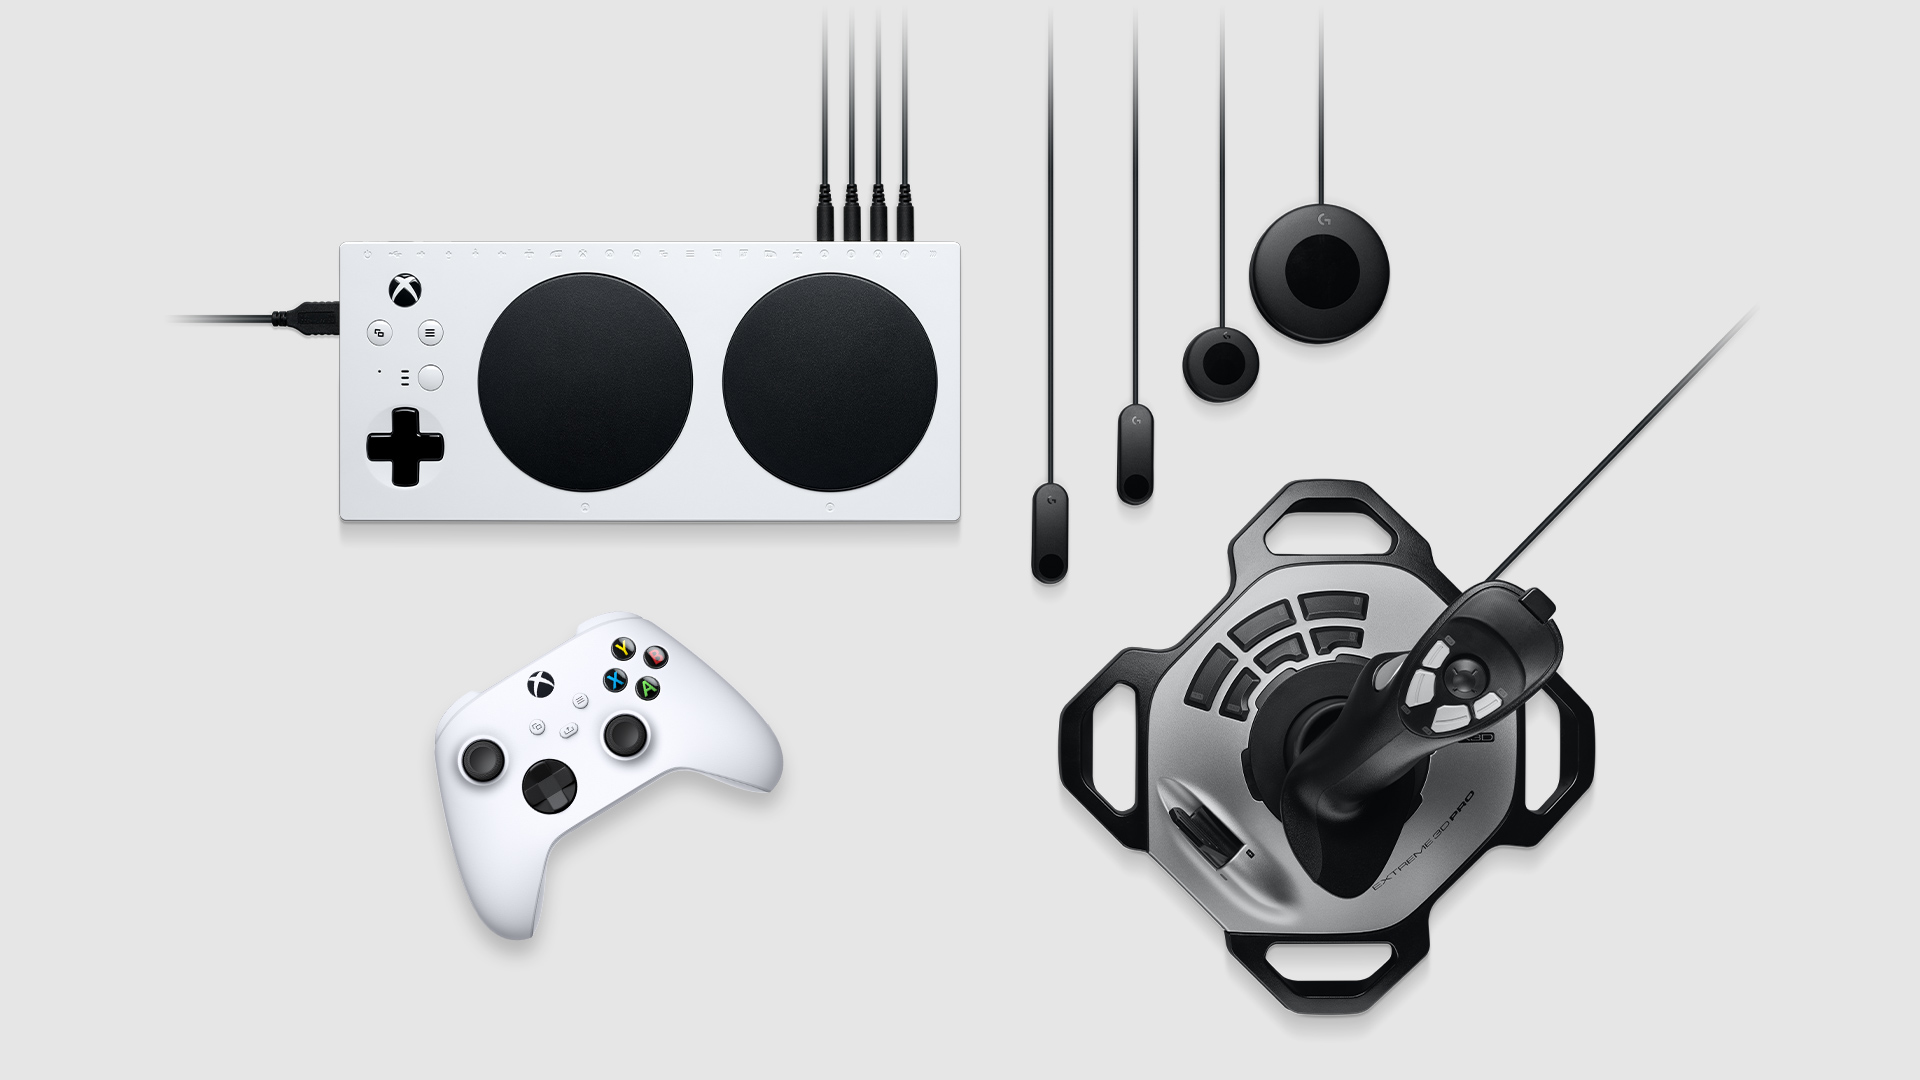 Collection of assistive accessories including Xbox adaptive controller, Logitech Adaptive Gaming Kit for Xbox adaptive controller, Xbox wireless controller, and Logitech Extreme 3D Pro Joystick.